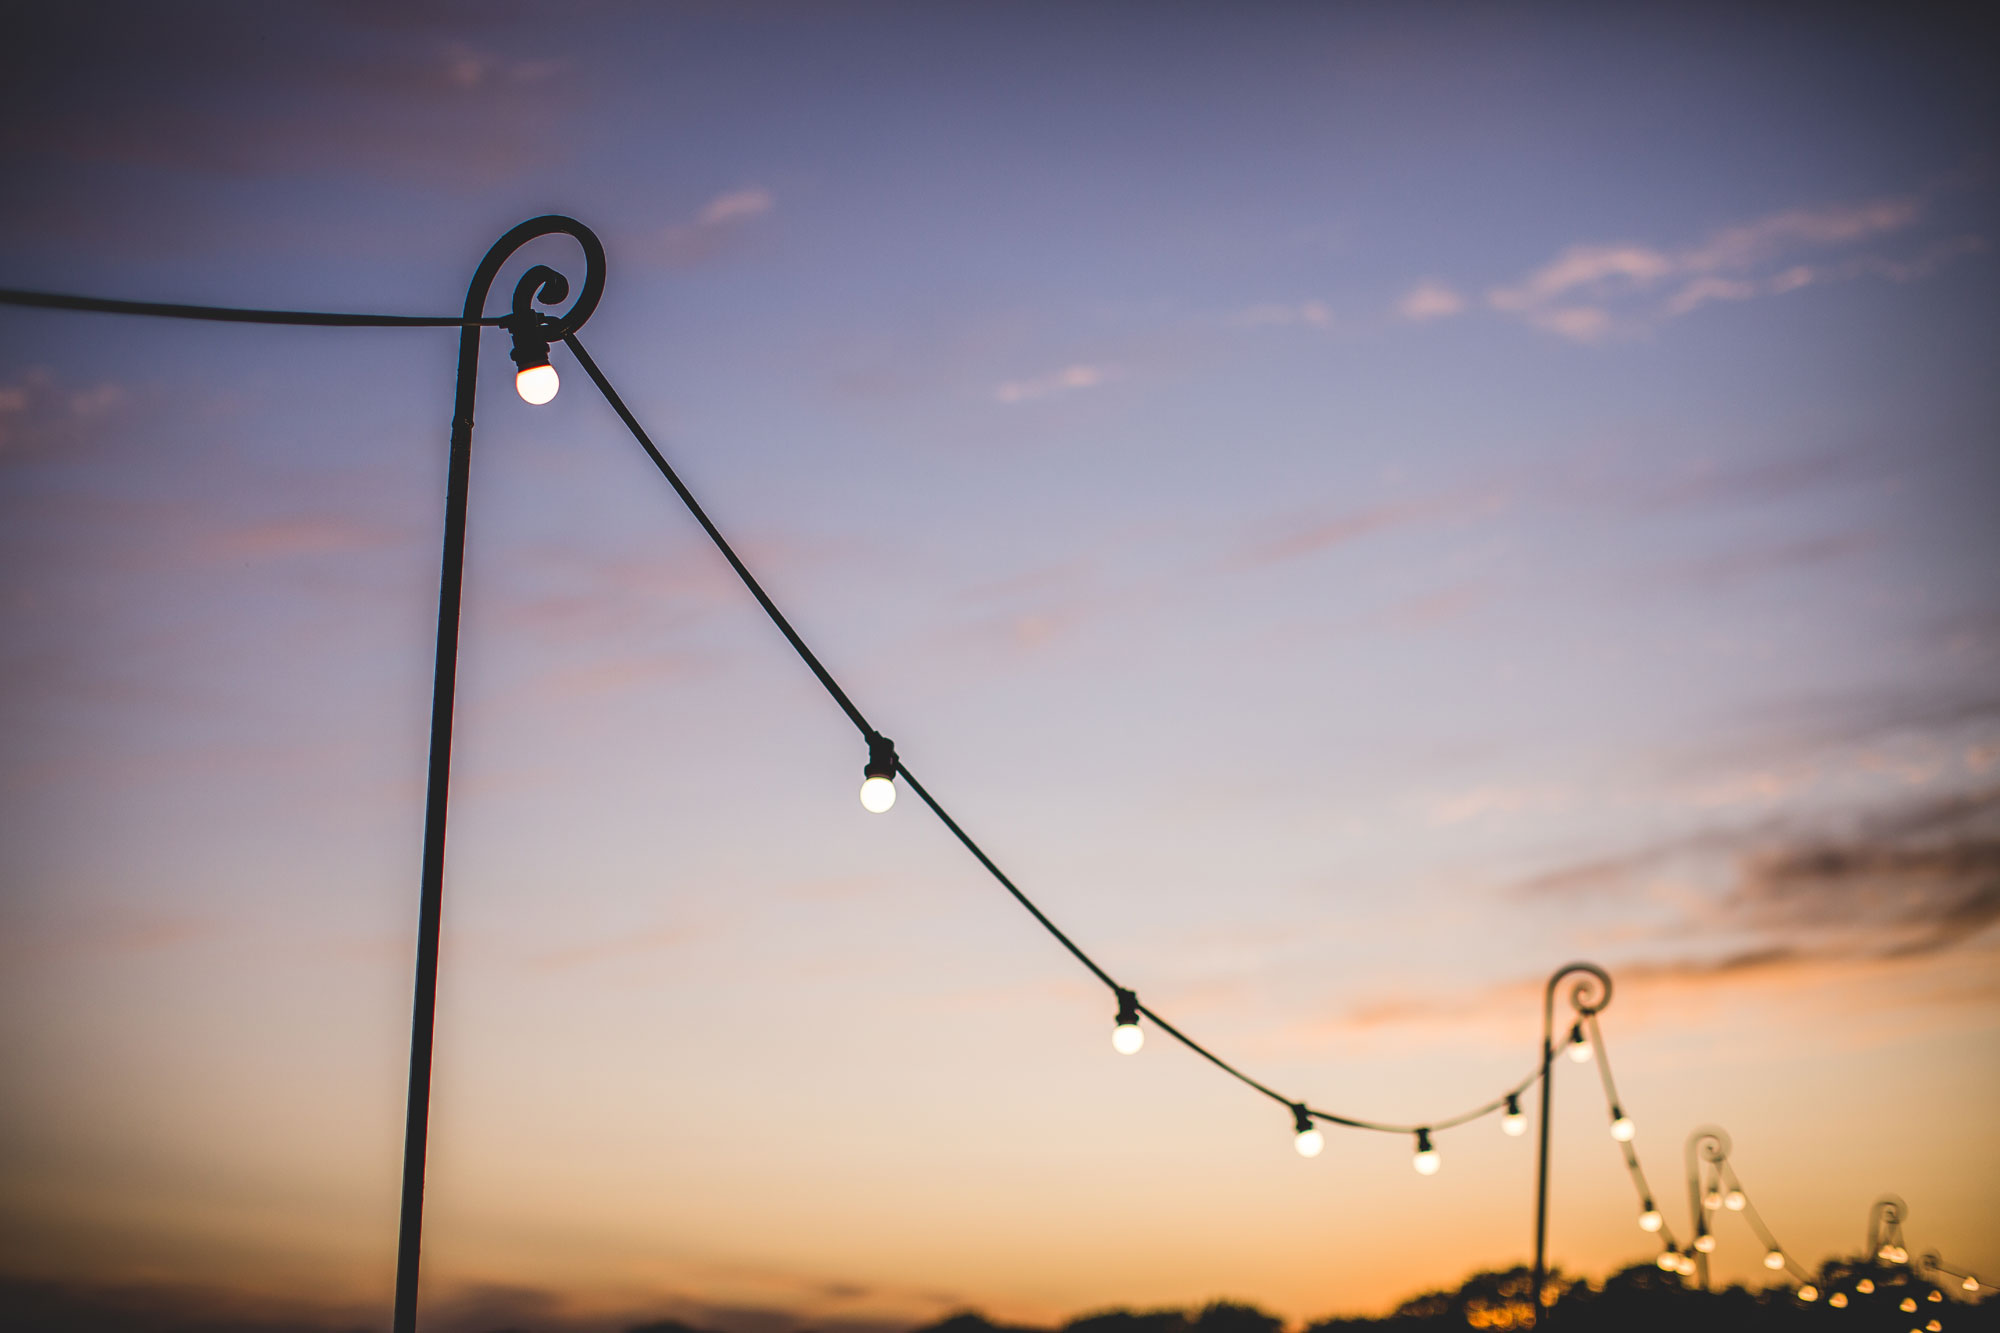 Shepherds Crook Festoon light stand